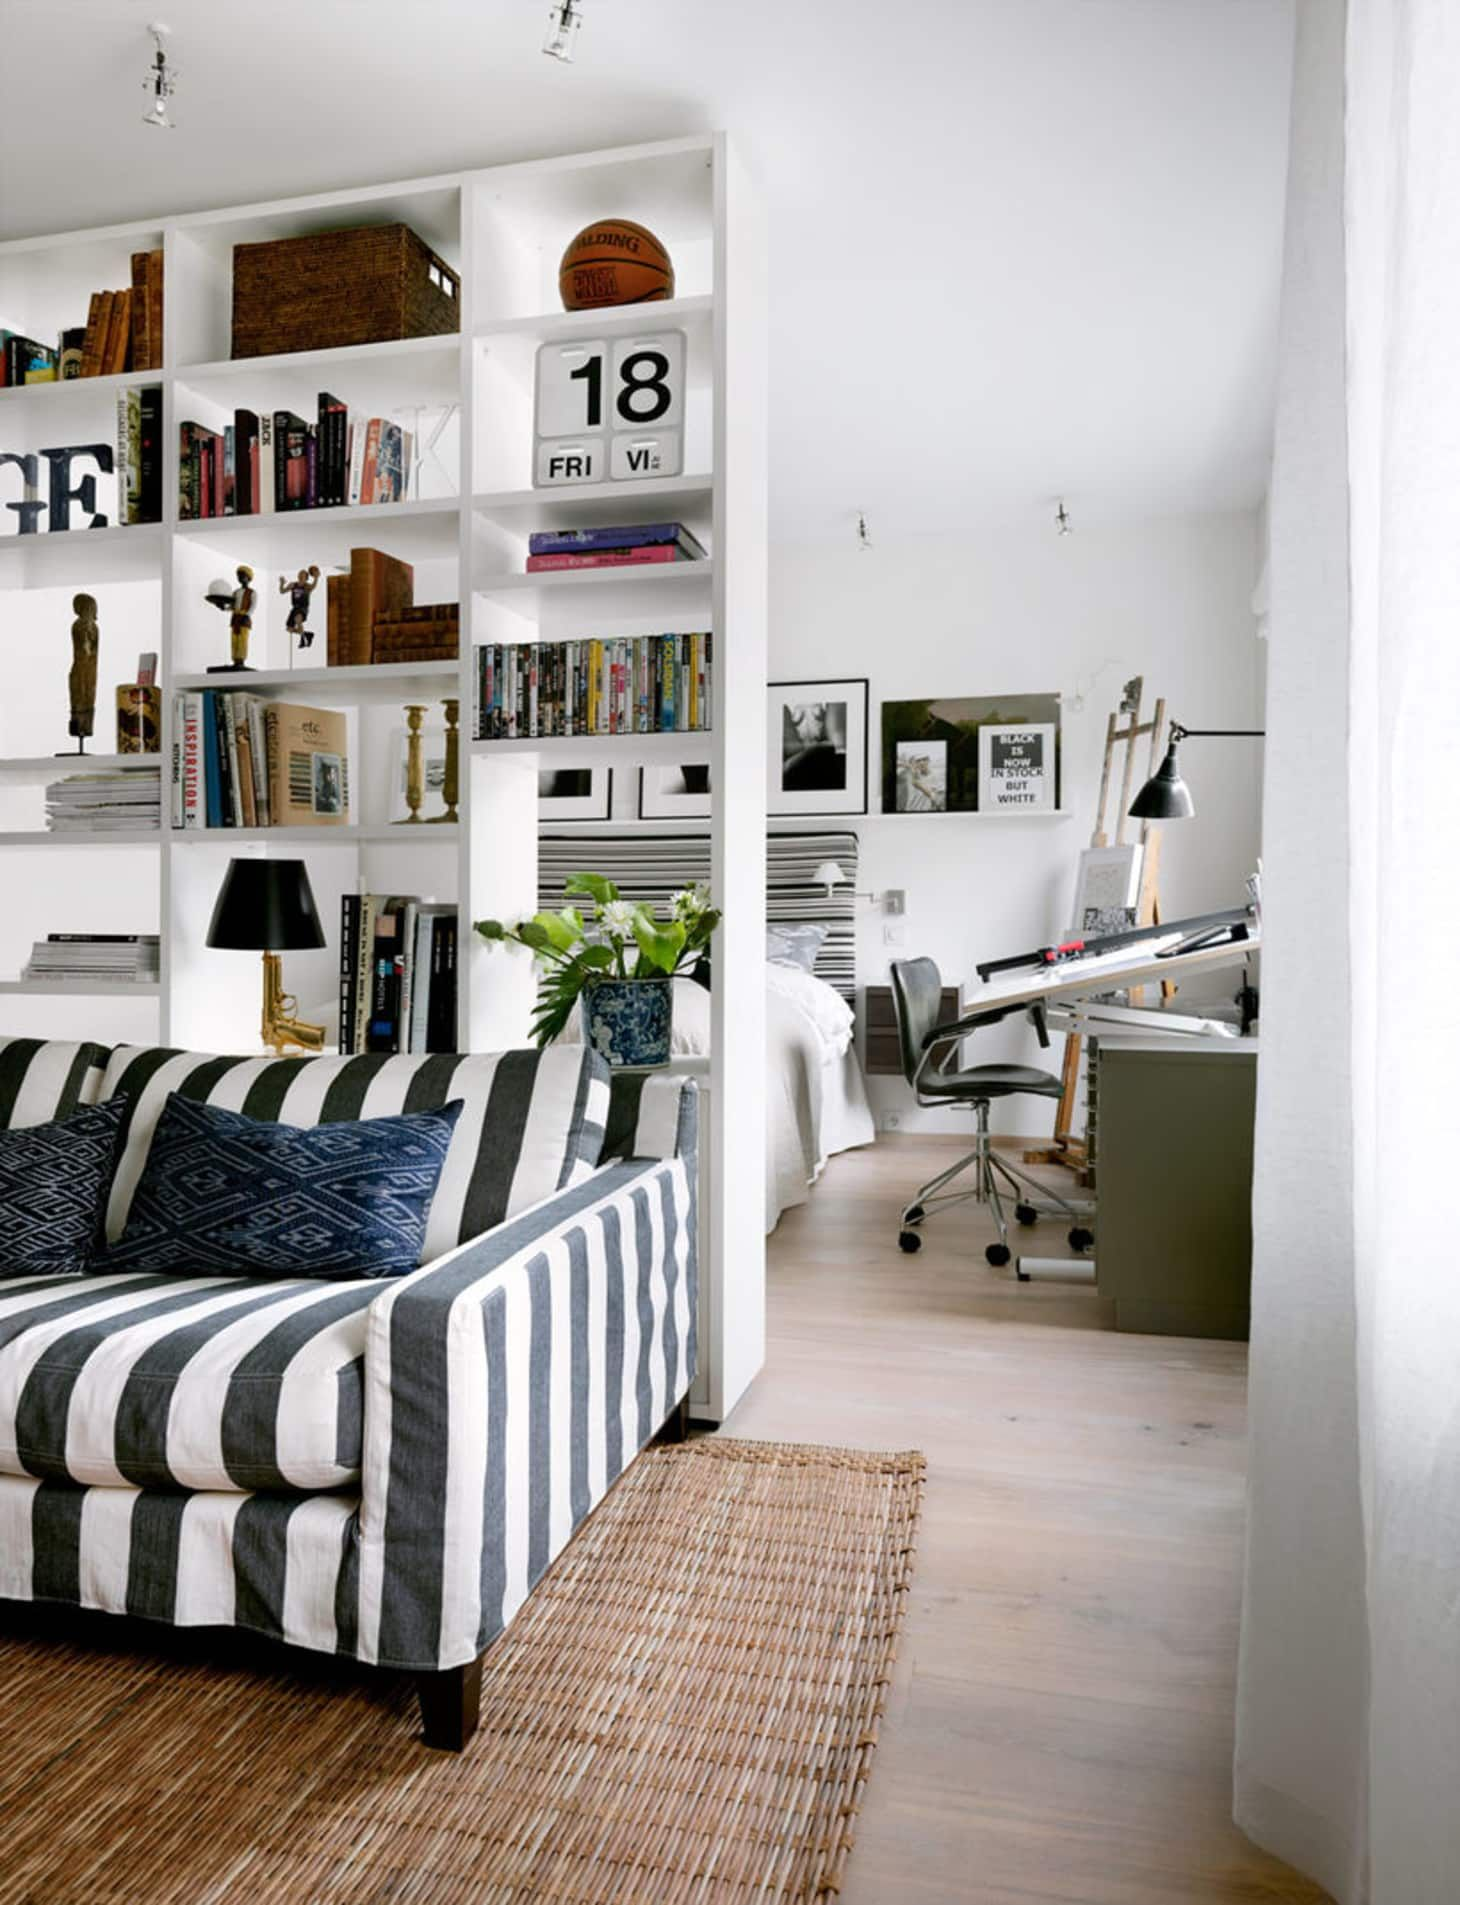 10 Smart Ways To Make The Most Of A Studio With Room Dividers